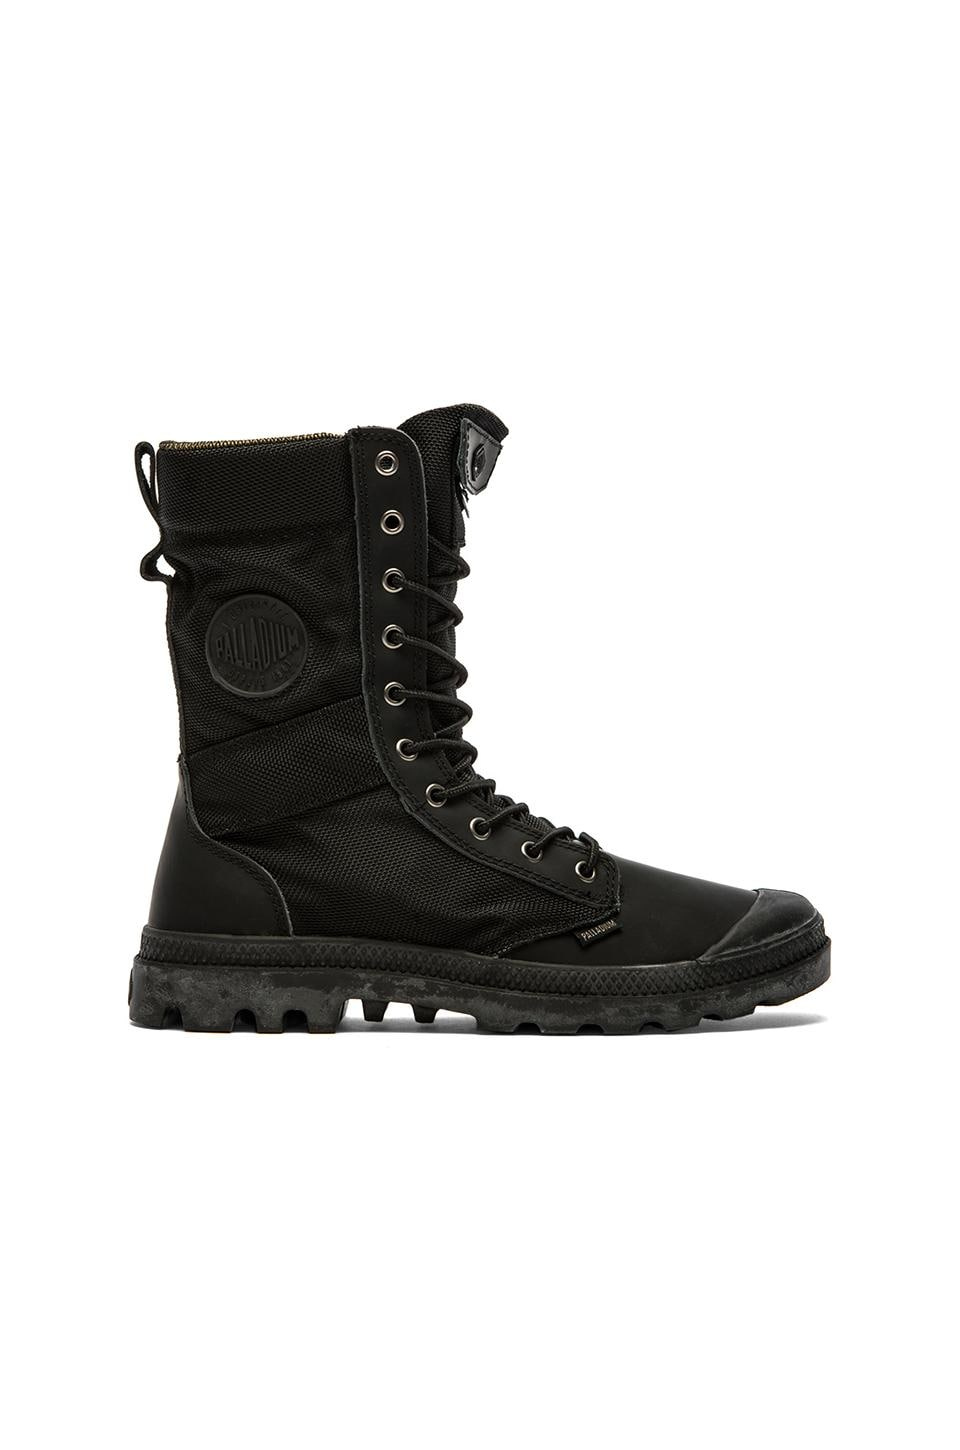 Palladium Ballistic Nylon & Specialty Leather Combo Pampa Tactical in Black/Metal